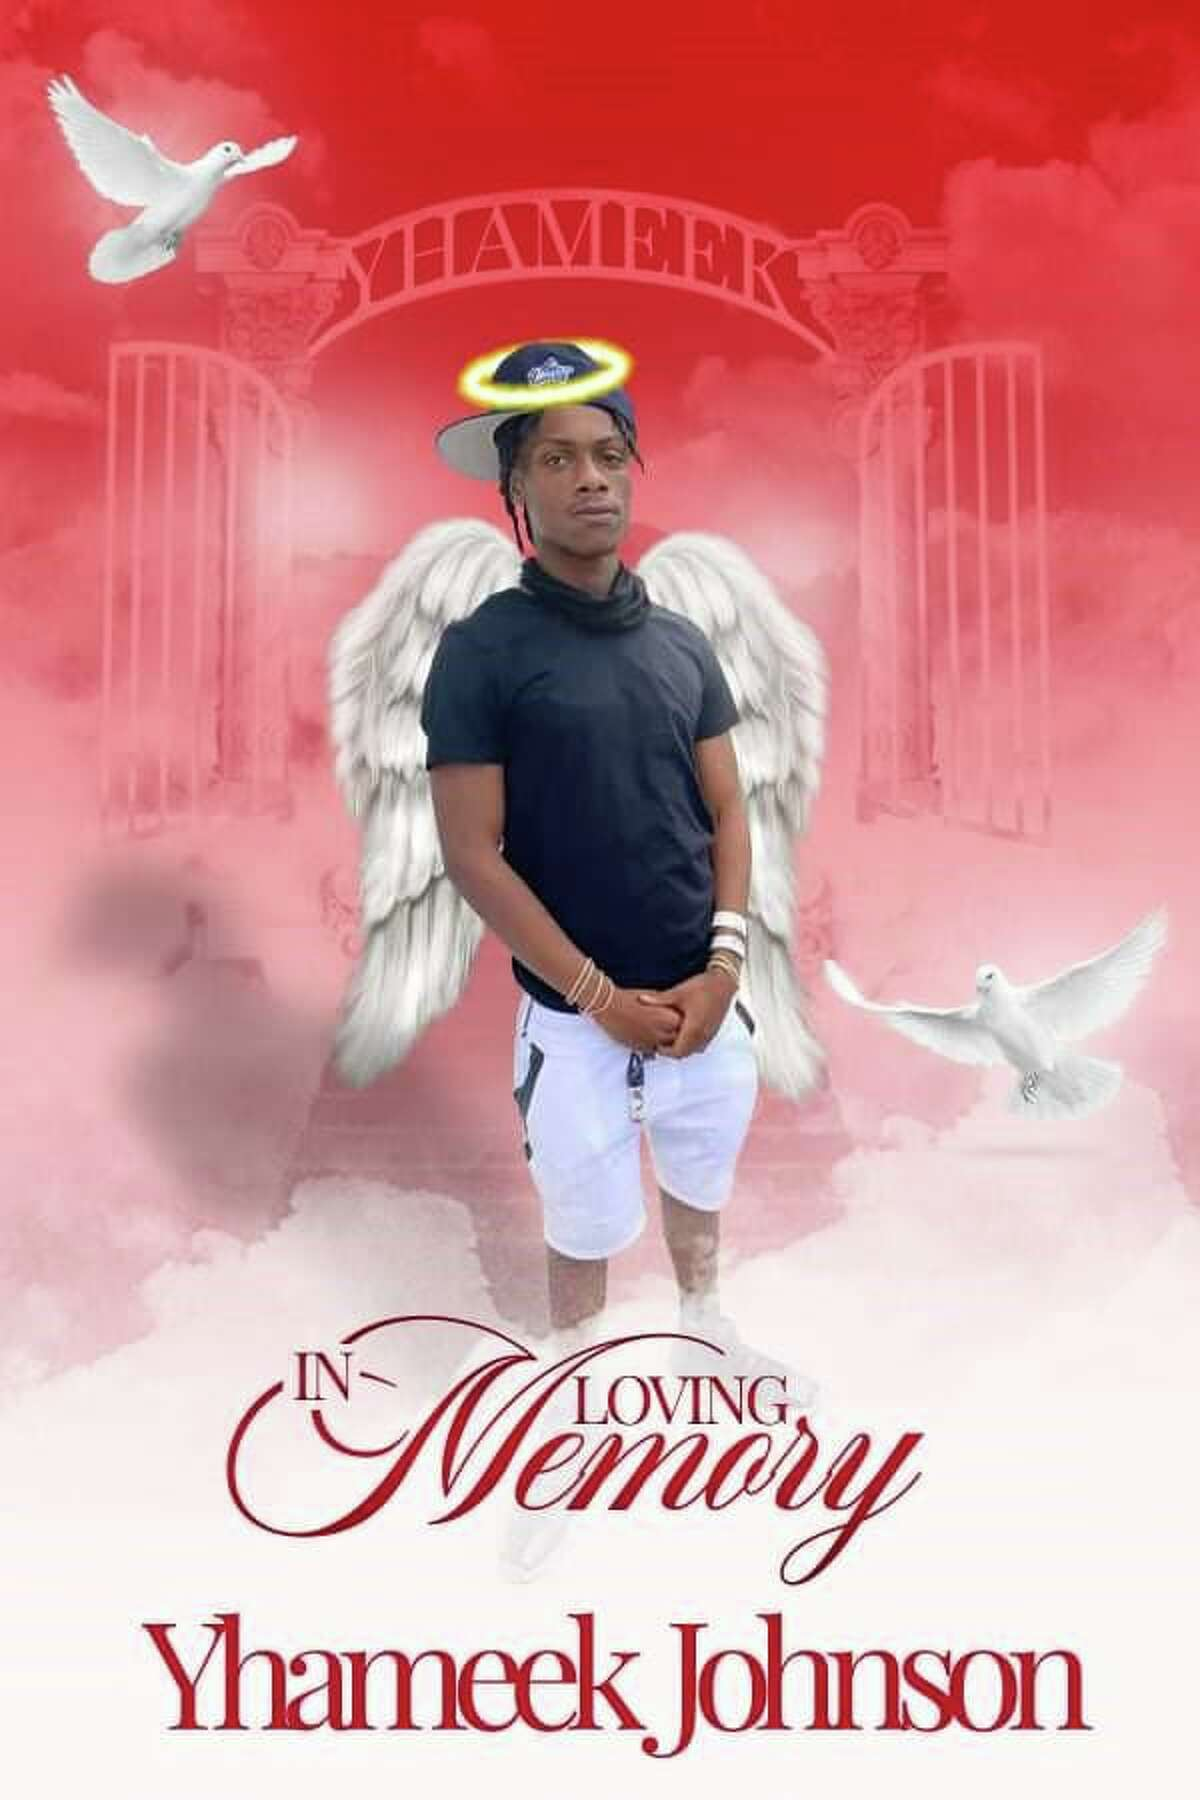 A photo of 18-year-old Yhameek Johnson with angel wings, contributed by his family